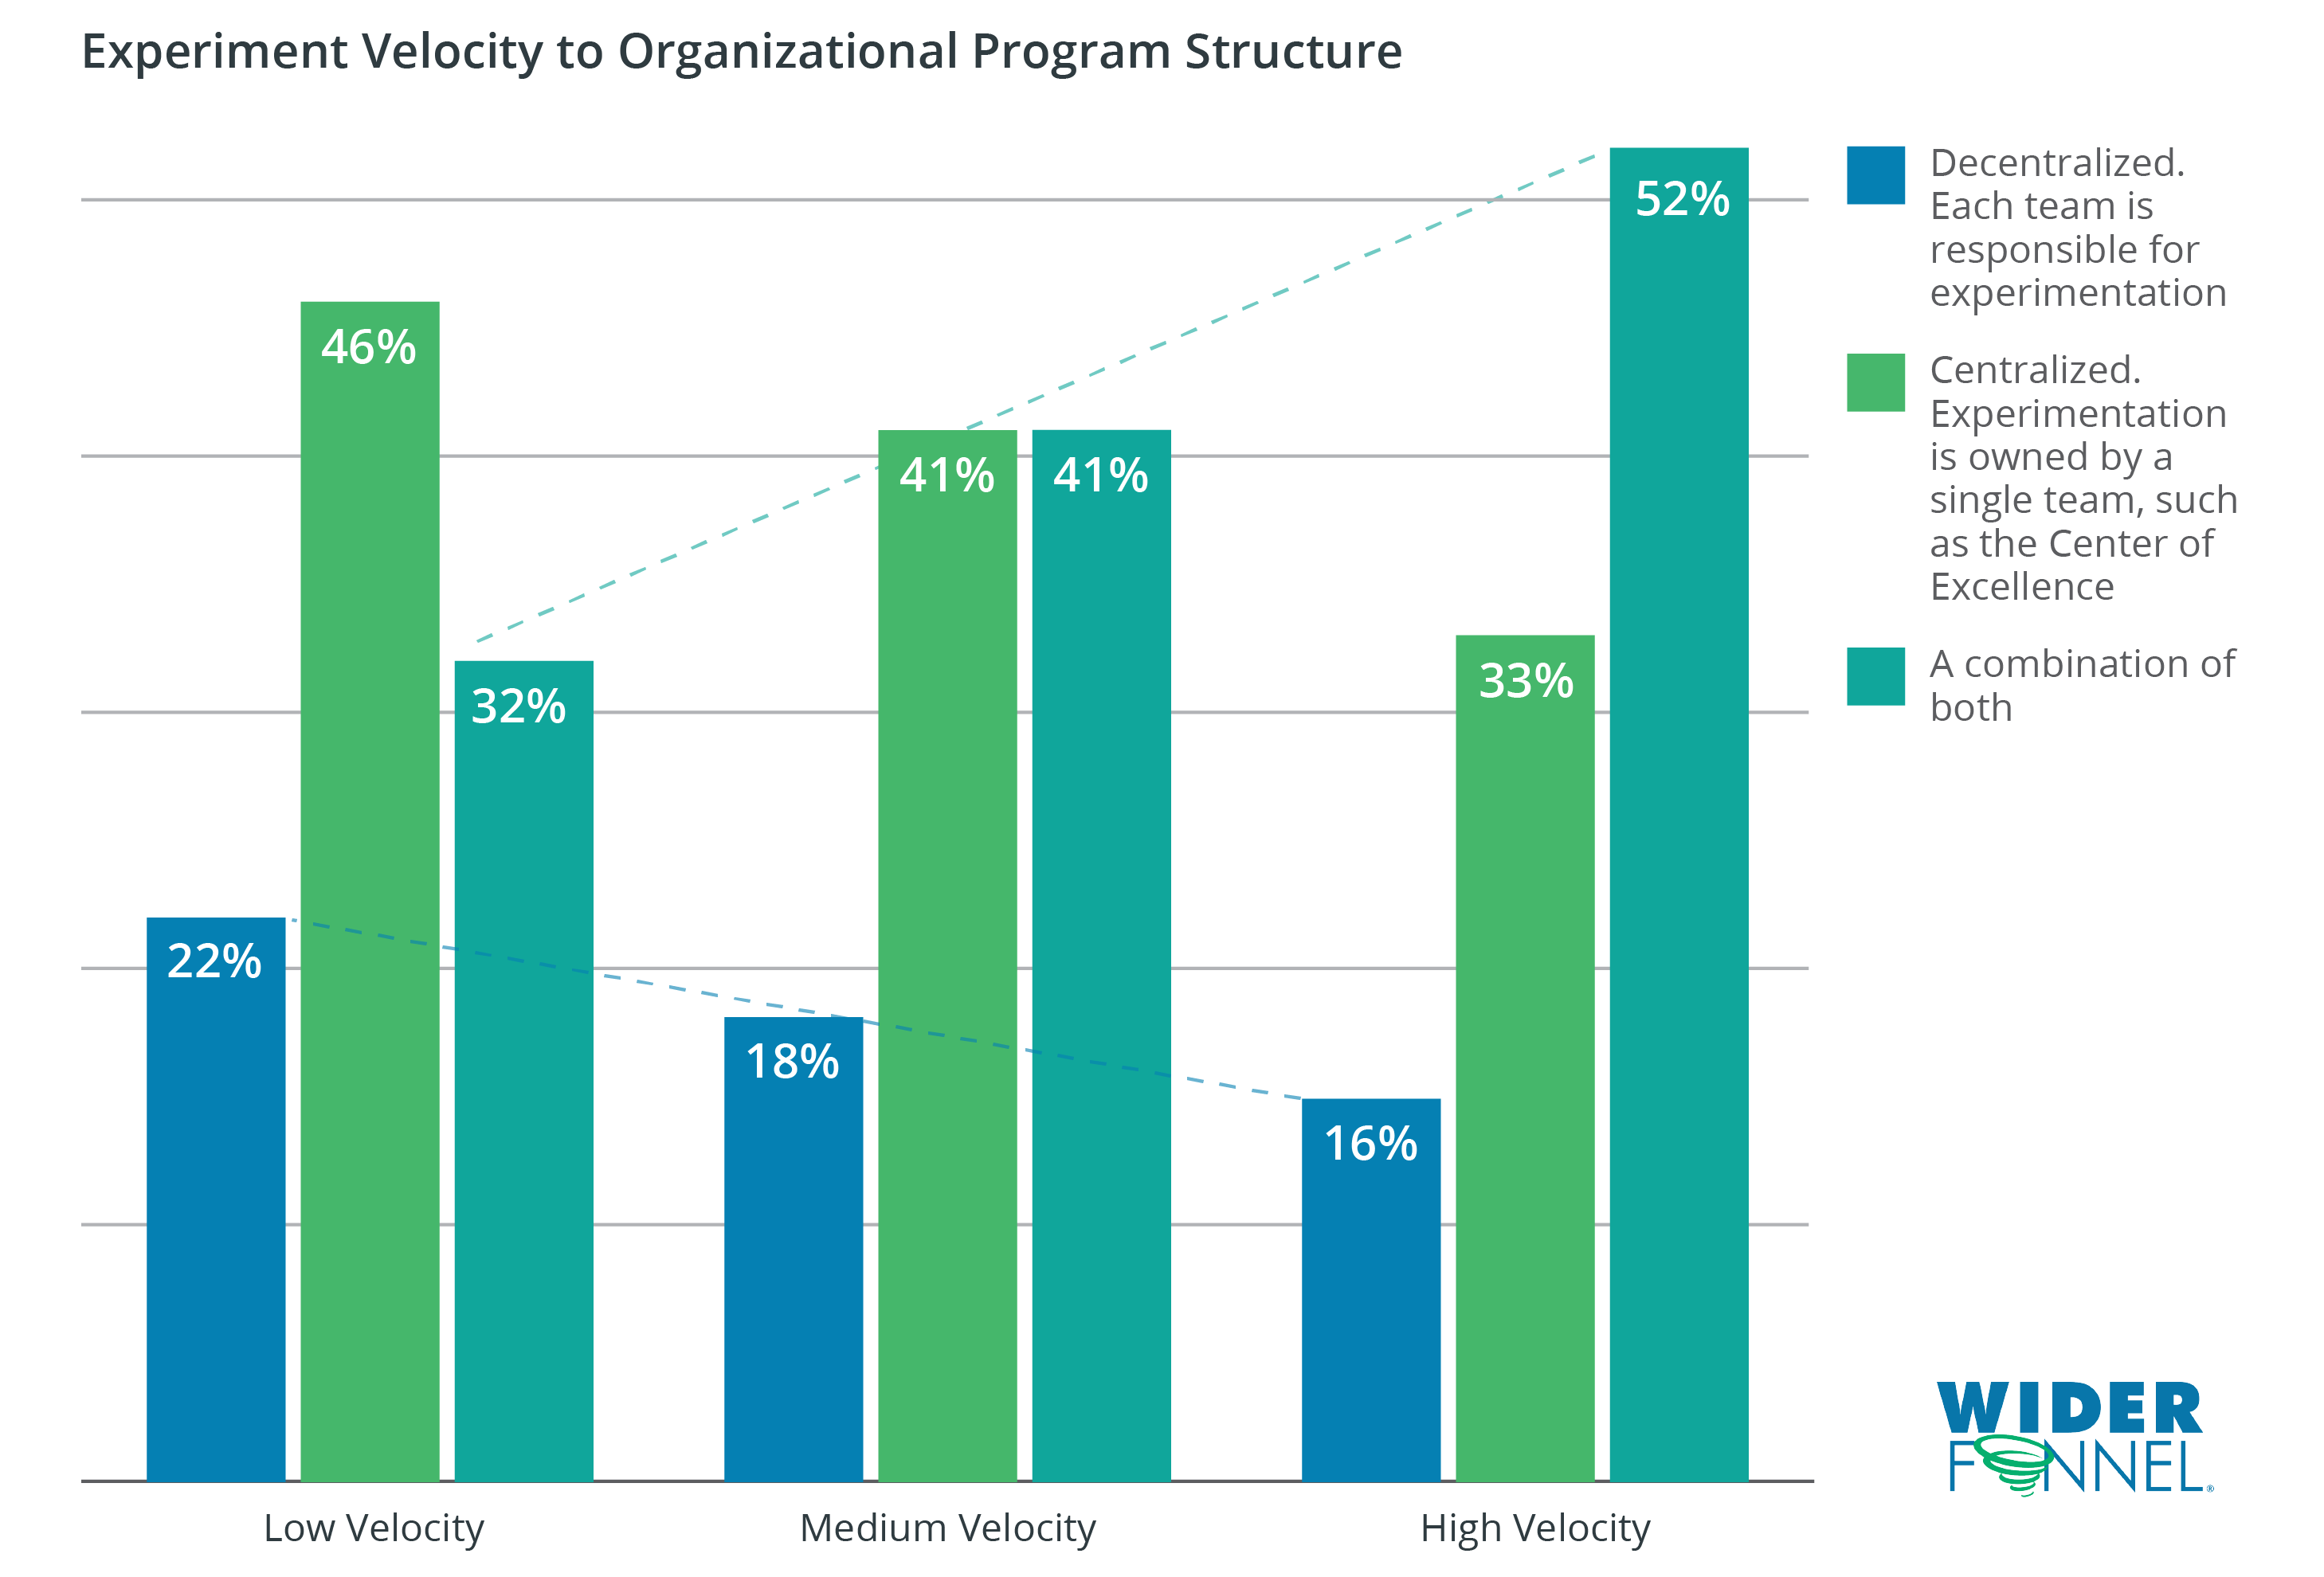 WiderFunnel State of Experimentation Maturity Organizational Structure to Velocity